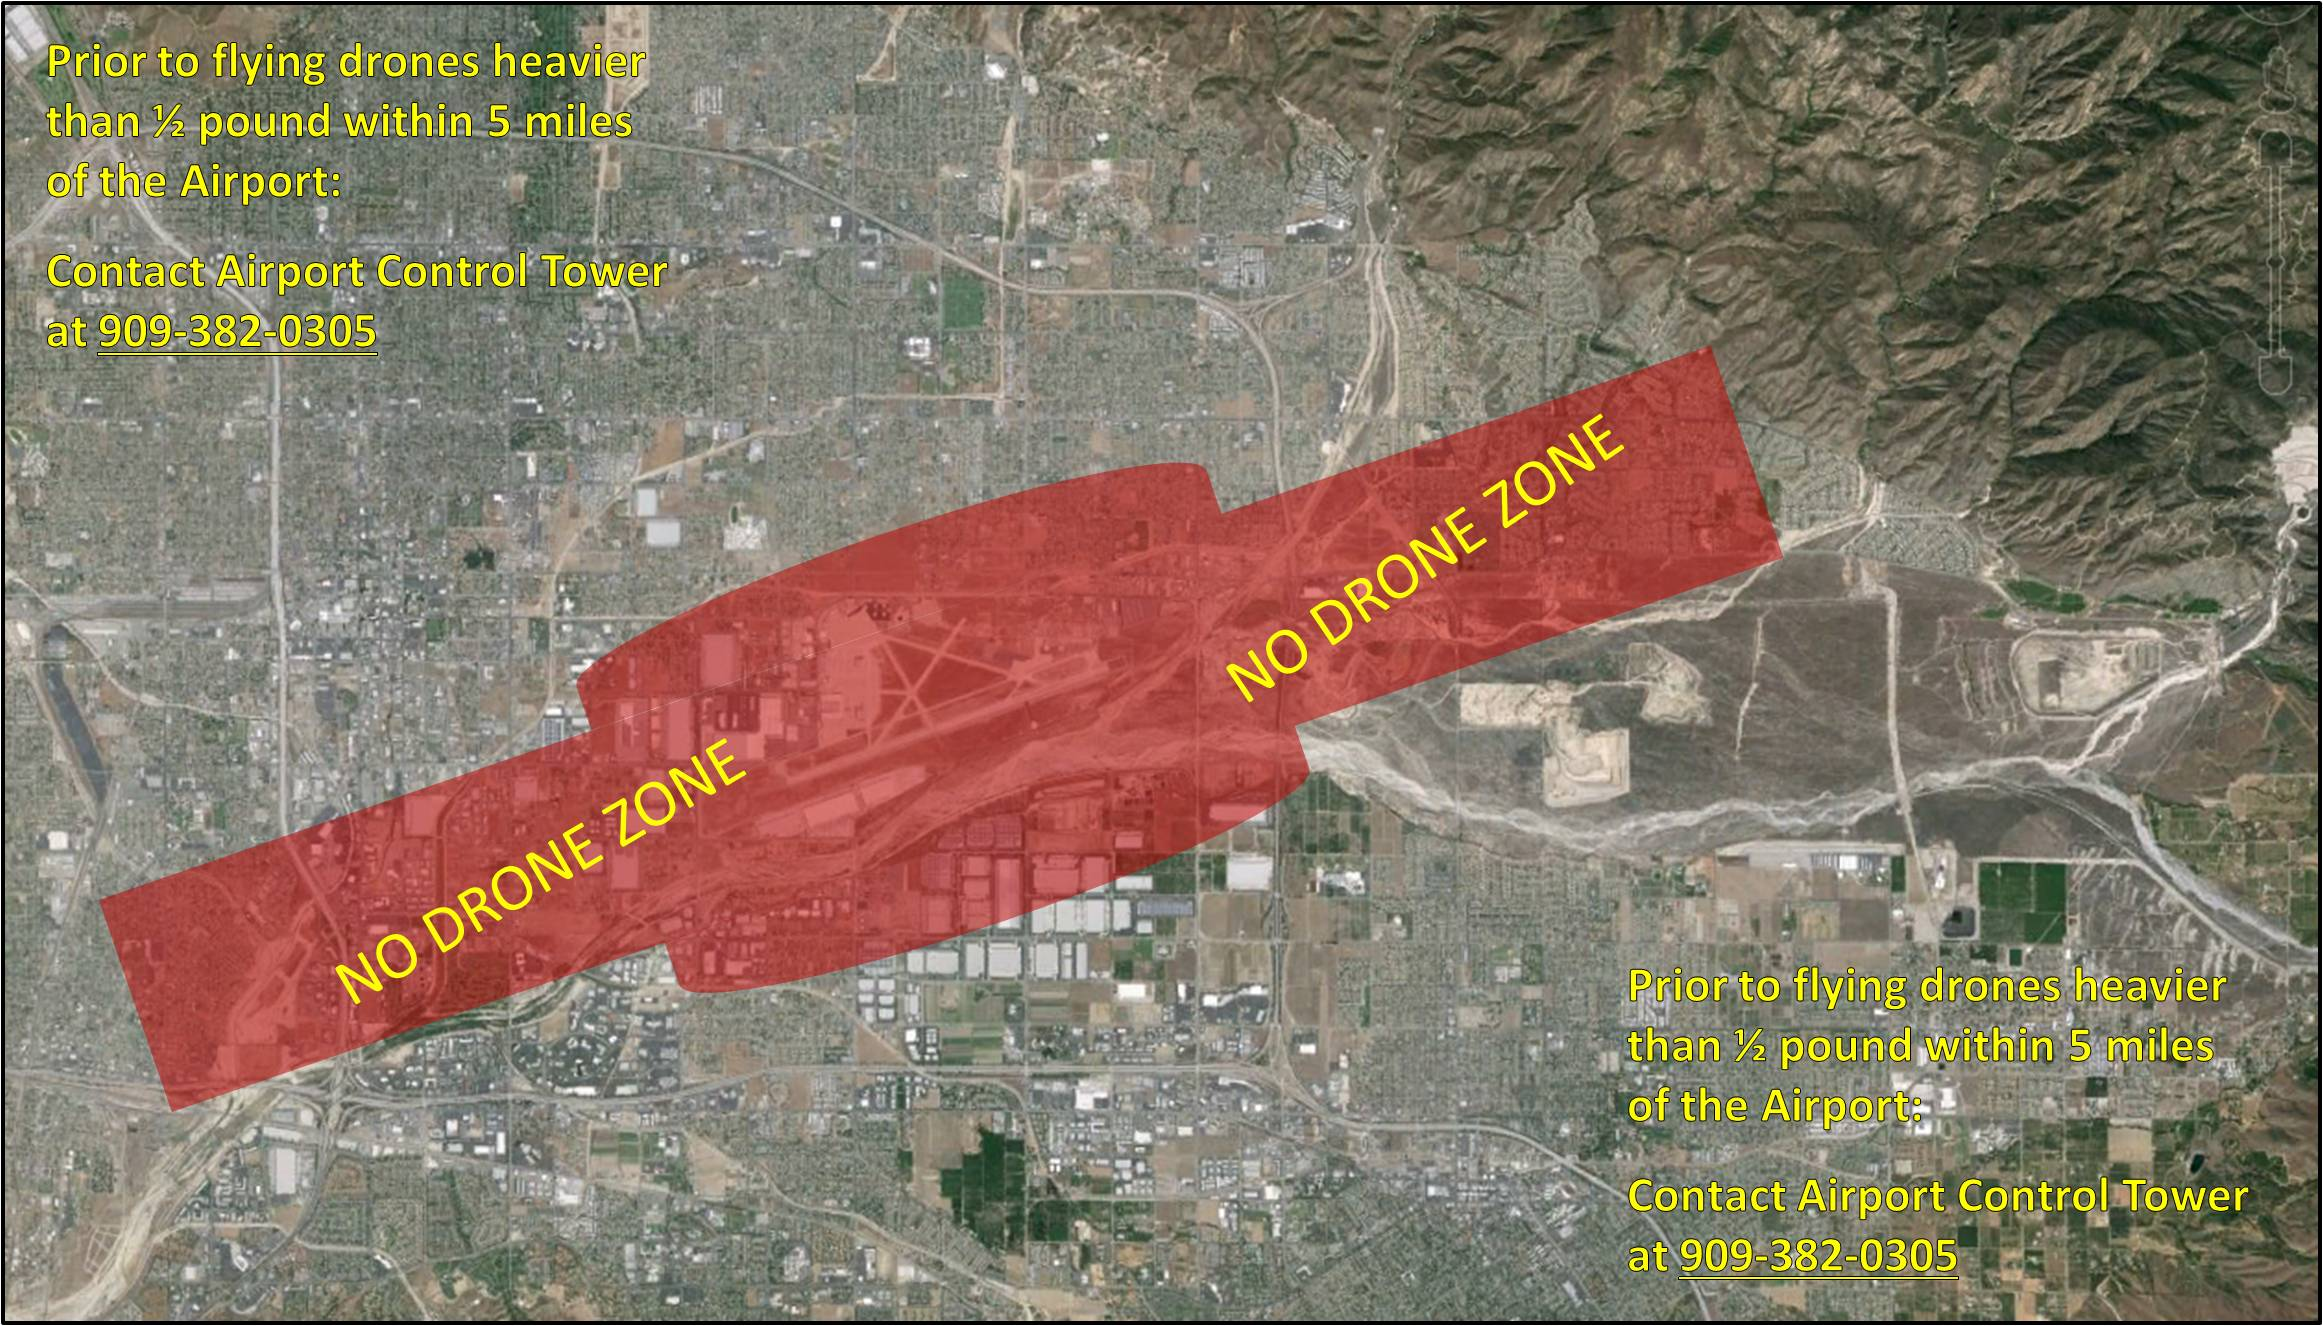 Air Traffic Control California Map.Drone Flight Information San Bernardino International Airport Sbd